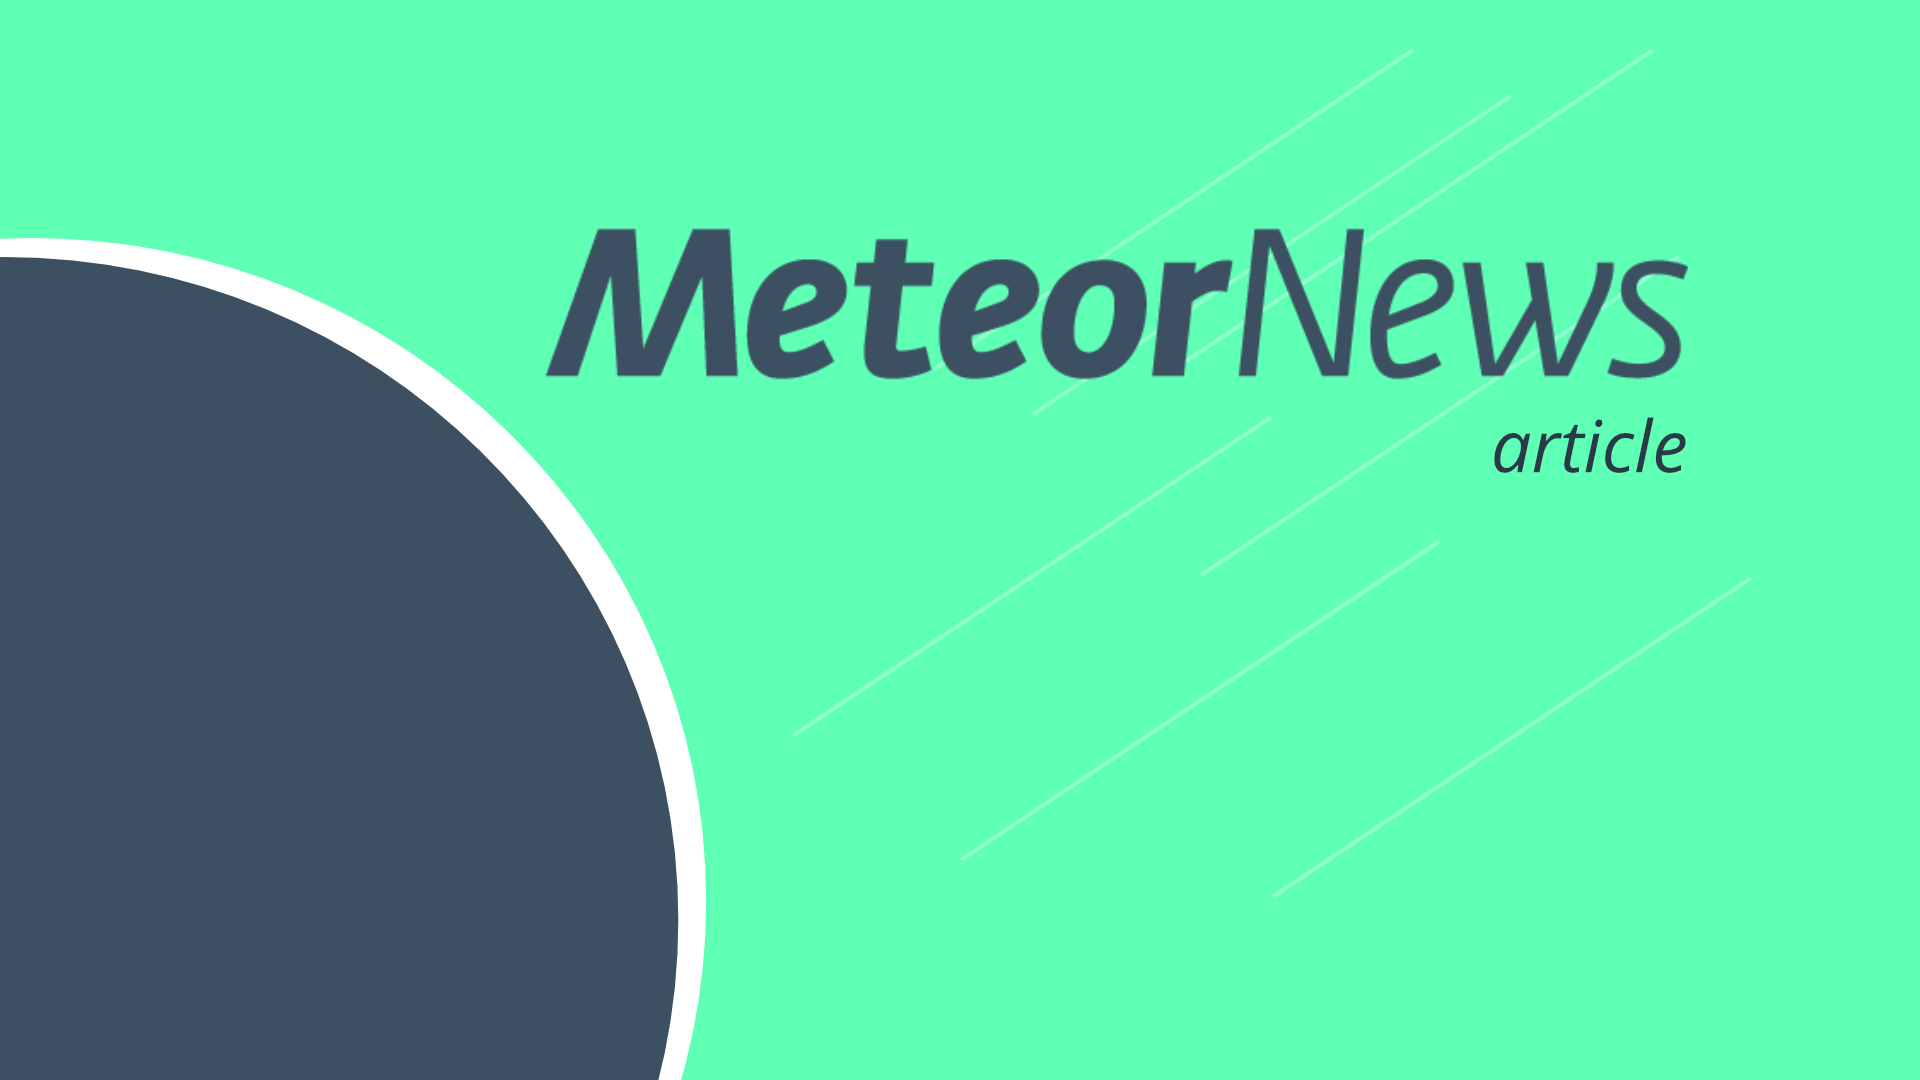 News from the meteor library: trajectories of meteors